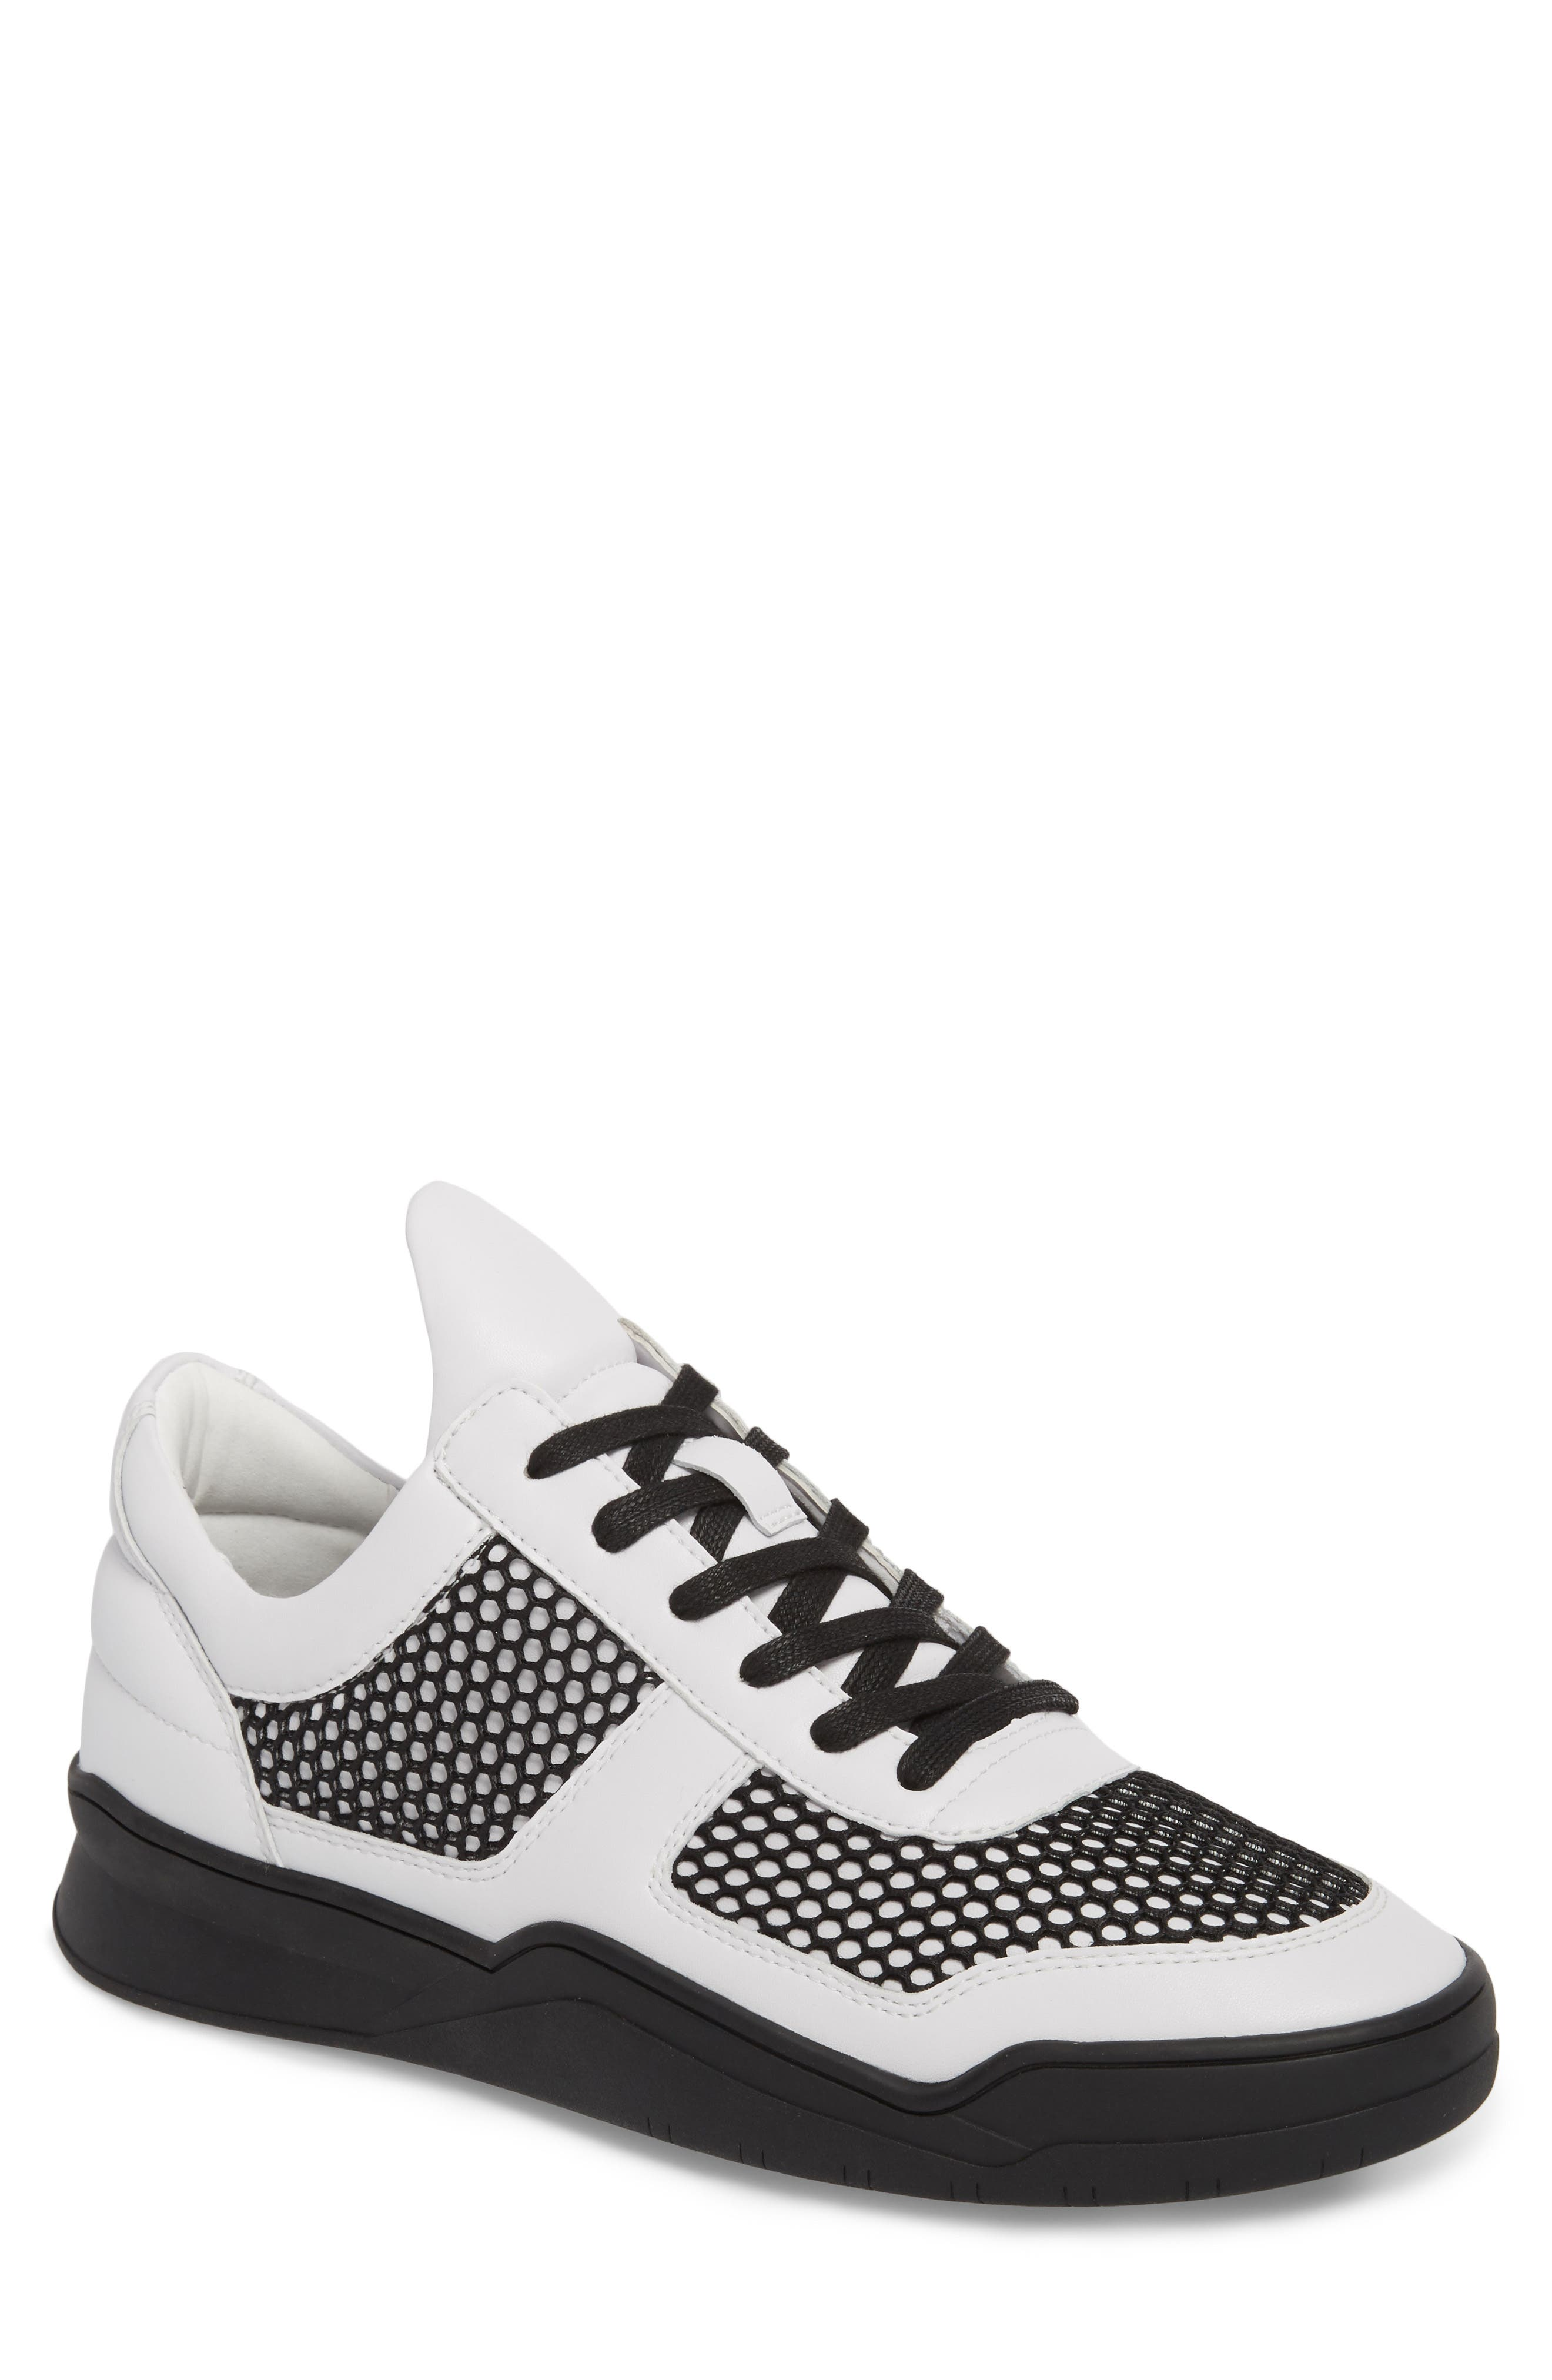 Low-Top Sneaker,                             Main thumbnail 1, color,                             BLACK/WHITE